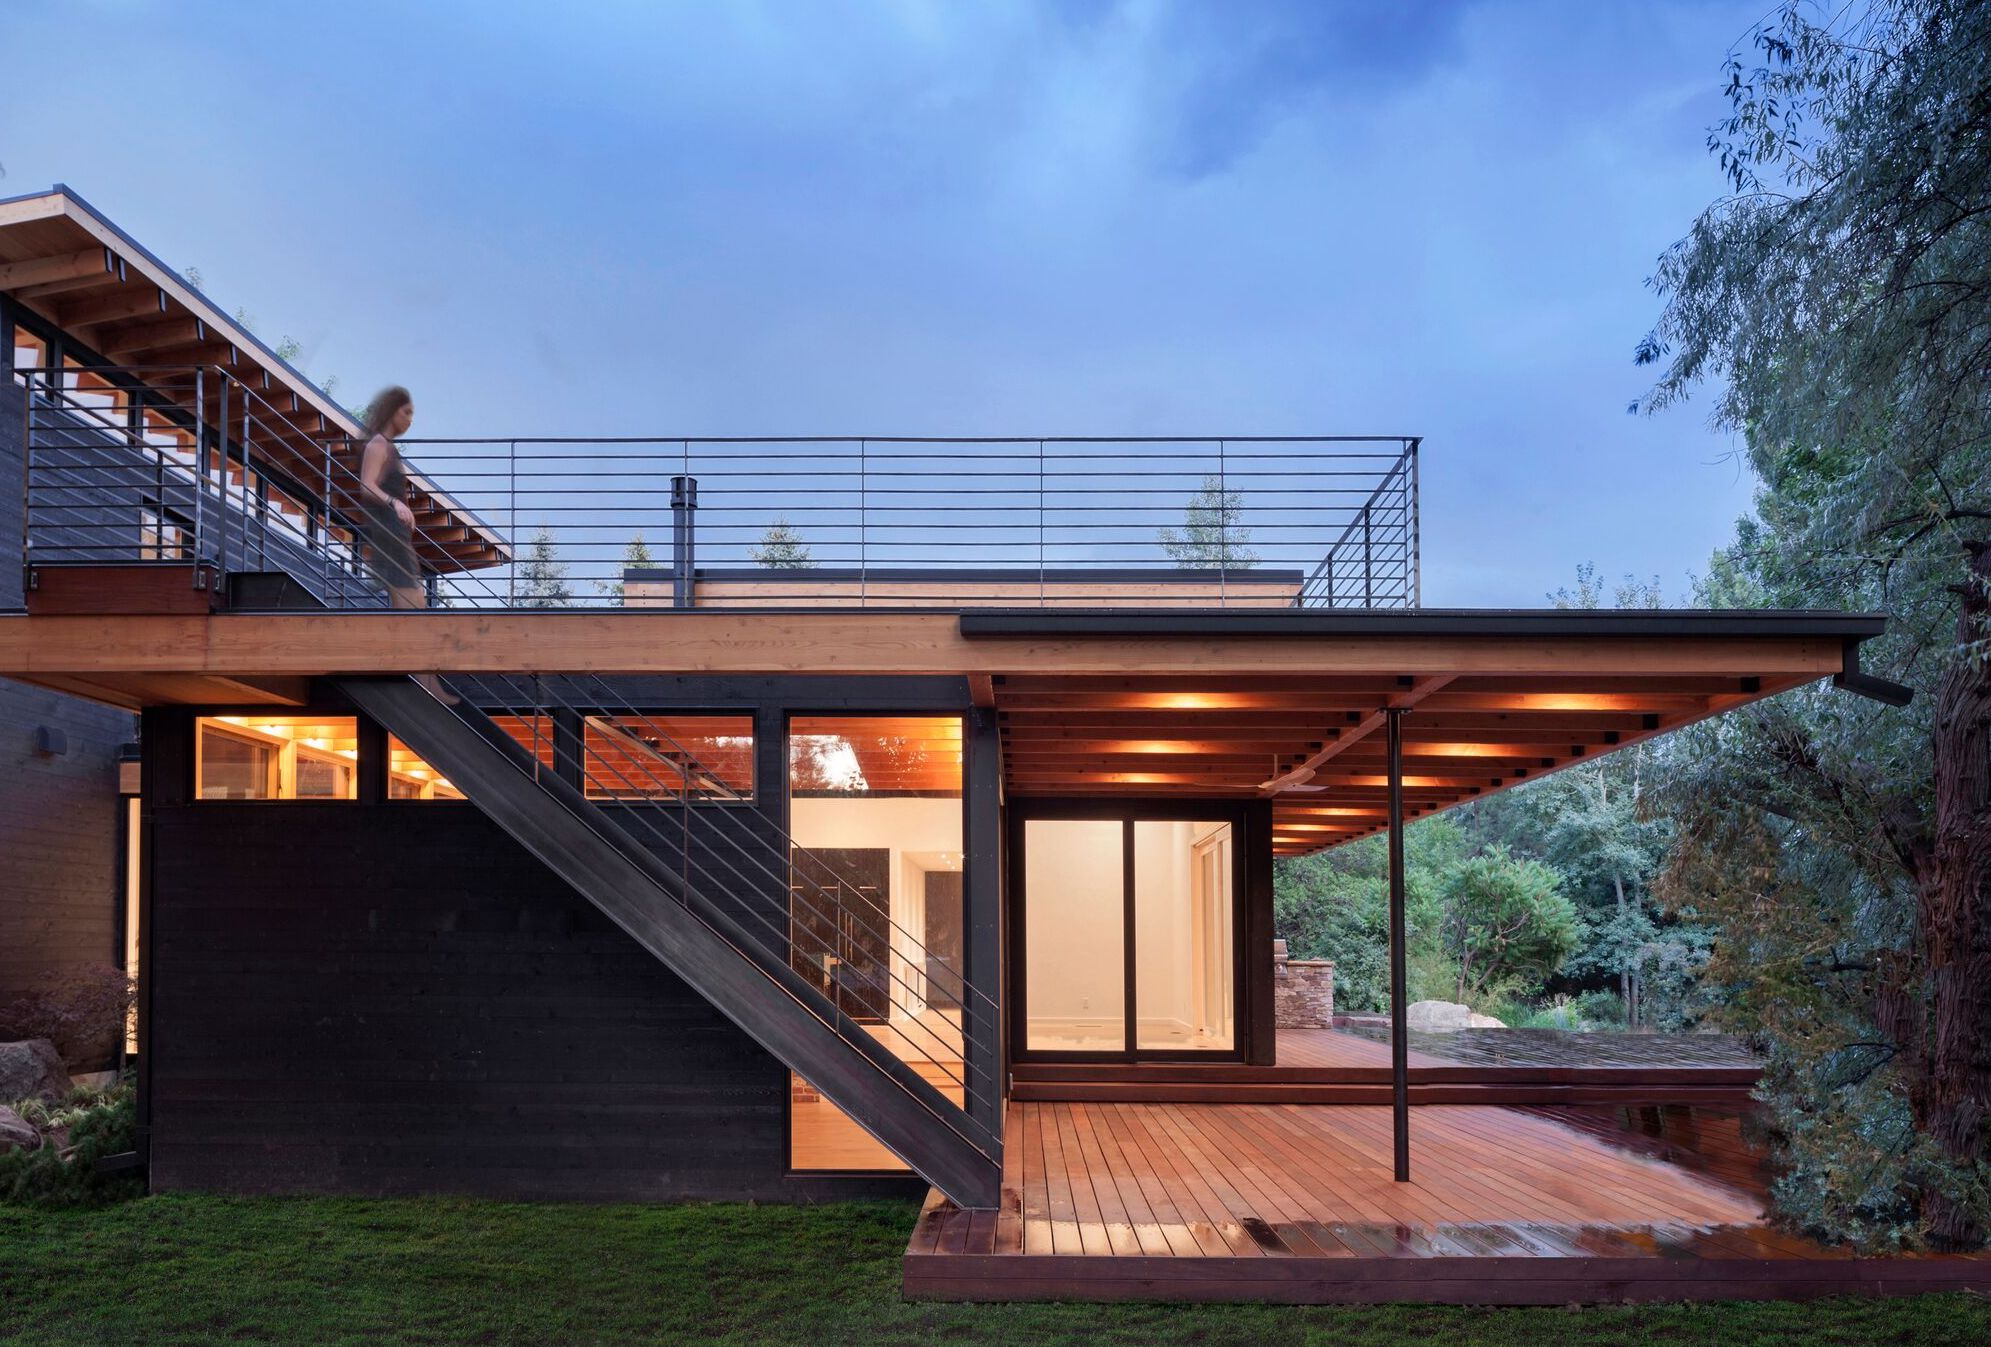 View of roof deck at Inside Out House by Renée del Gaudio Architecture